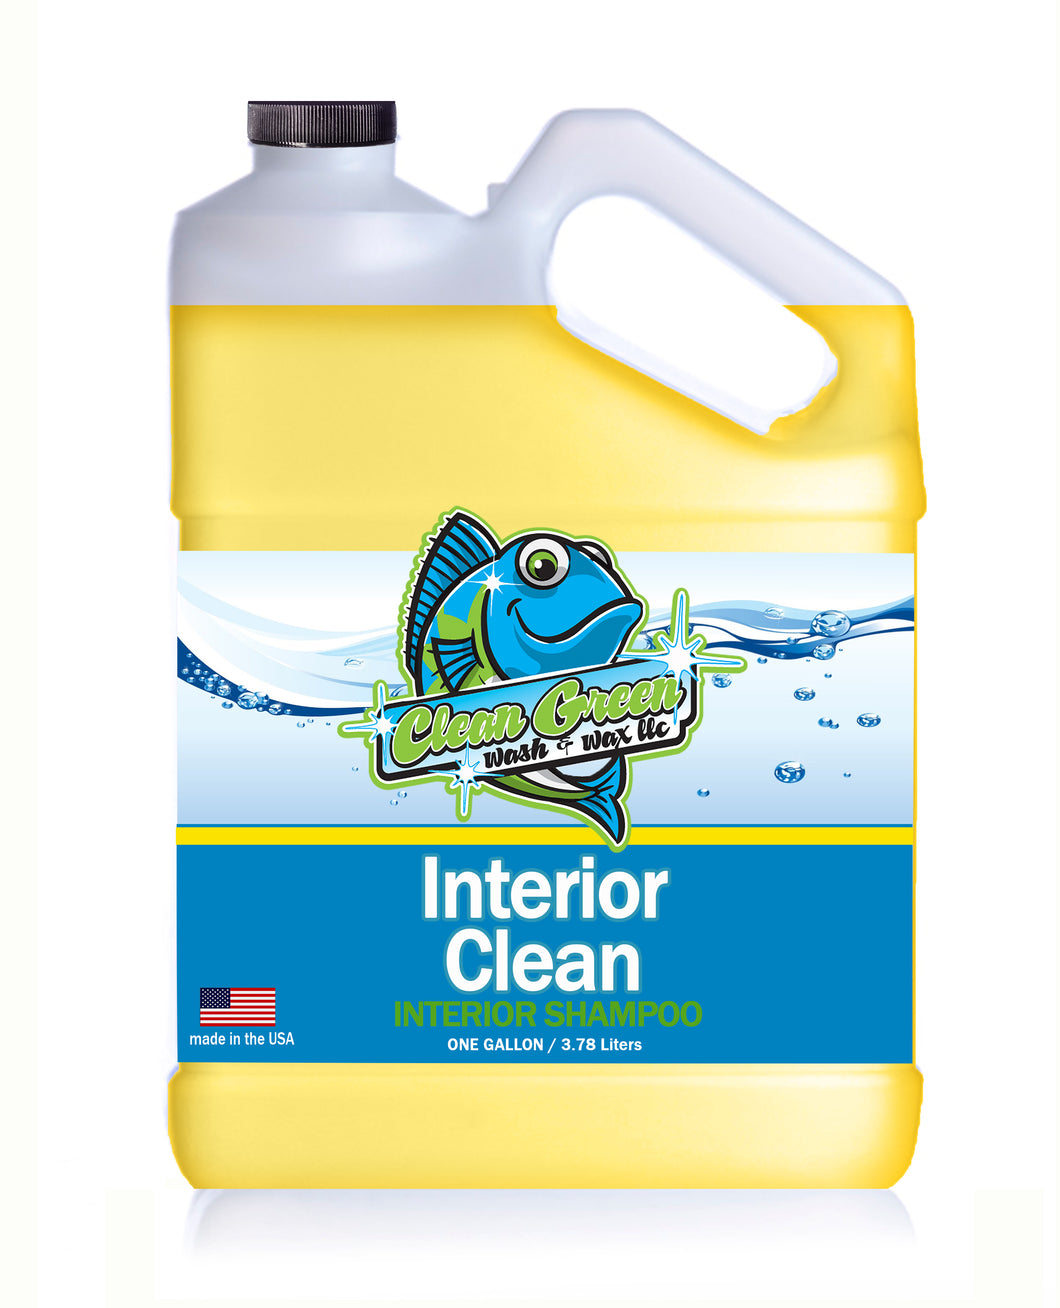 Clean Green Wash & Wax Interior Clean 1 Gallon Concentrate 300:1